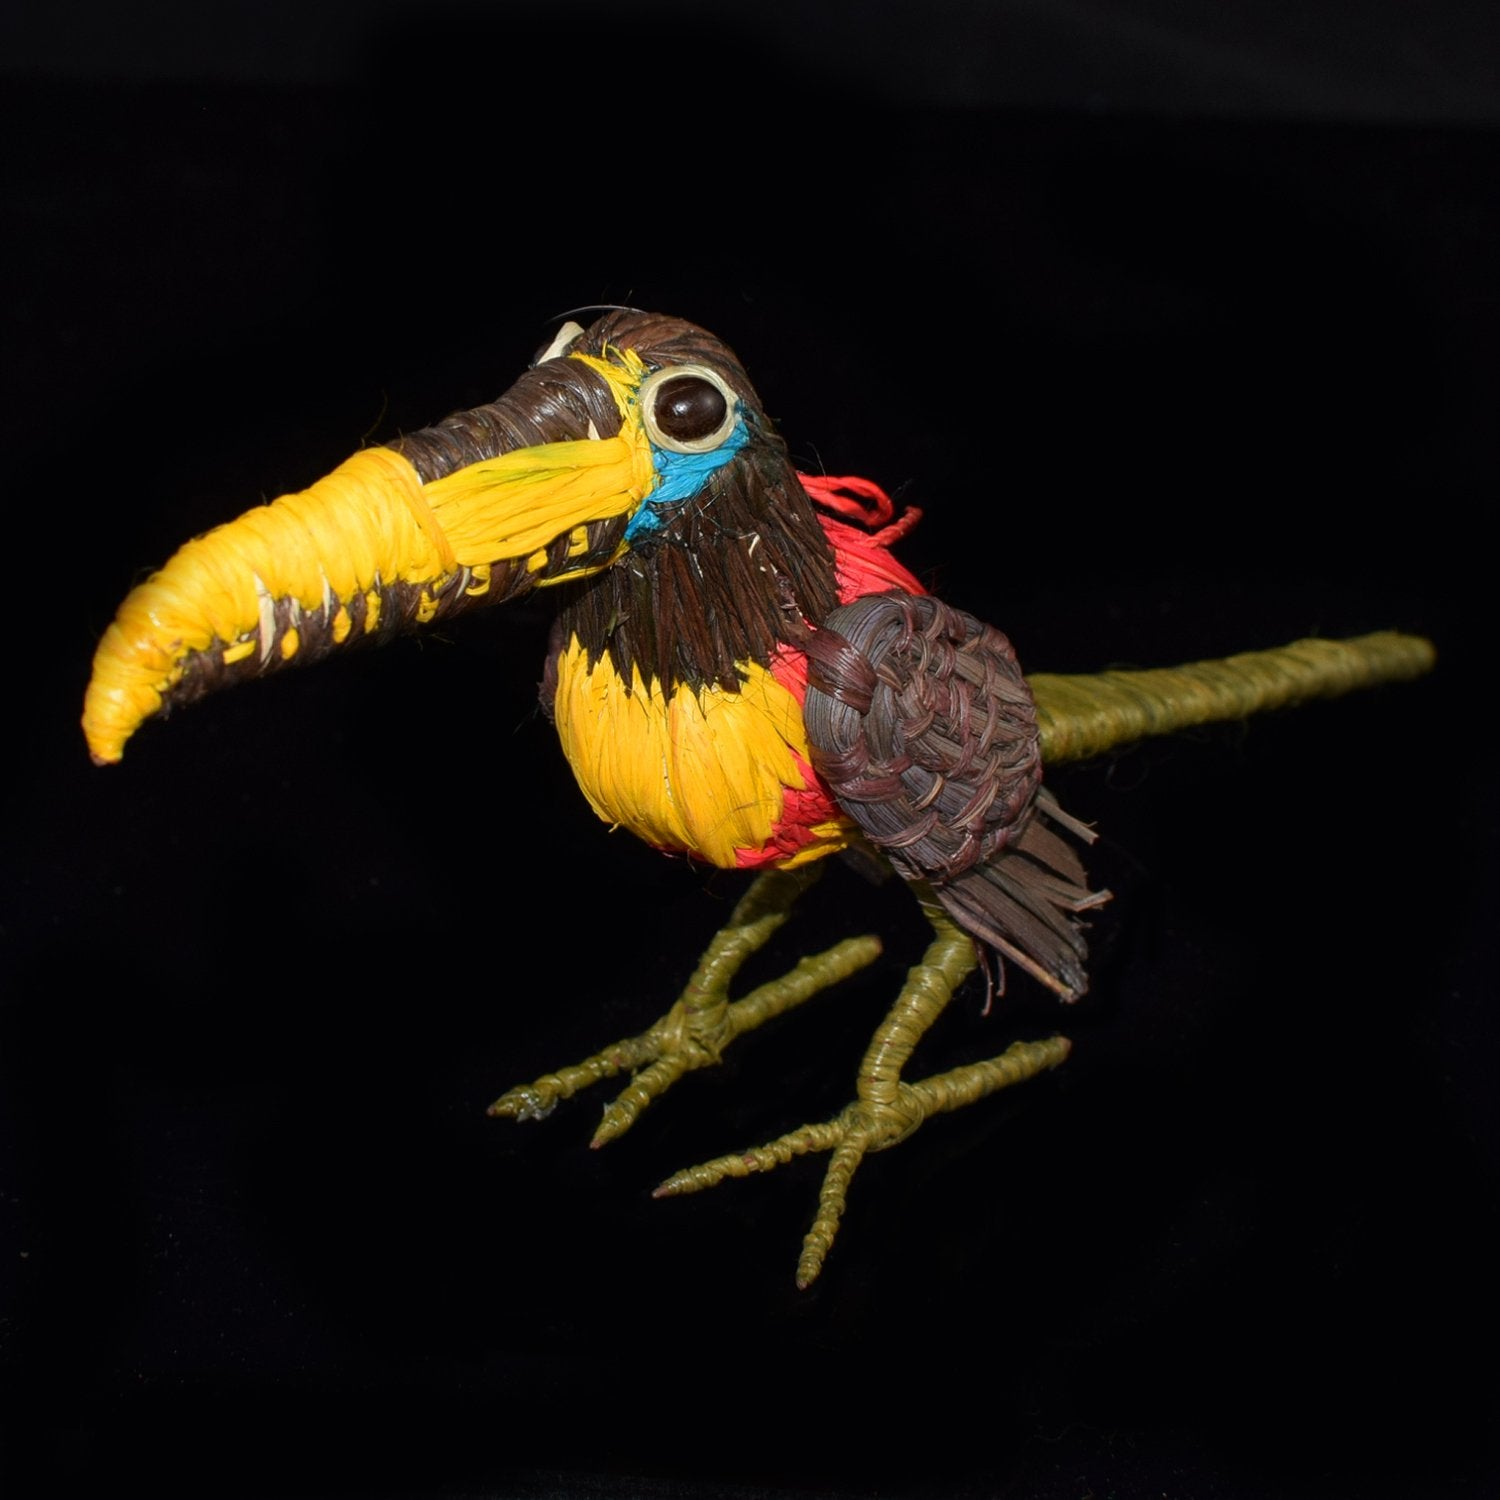 FAIR -TRADE CHRISTMAS TREE ORNAMENT - CHESTNUT EARED ARACARI (TOUCAN) - WOVEN BY PERUVIAN AMAZON ARTISAN